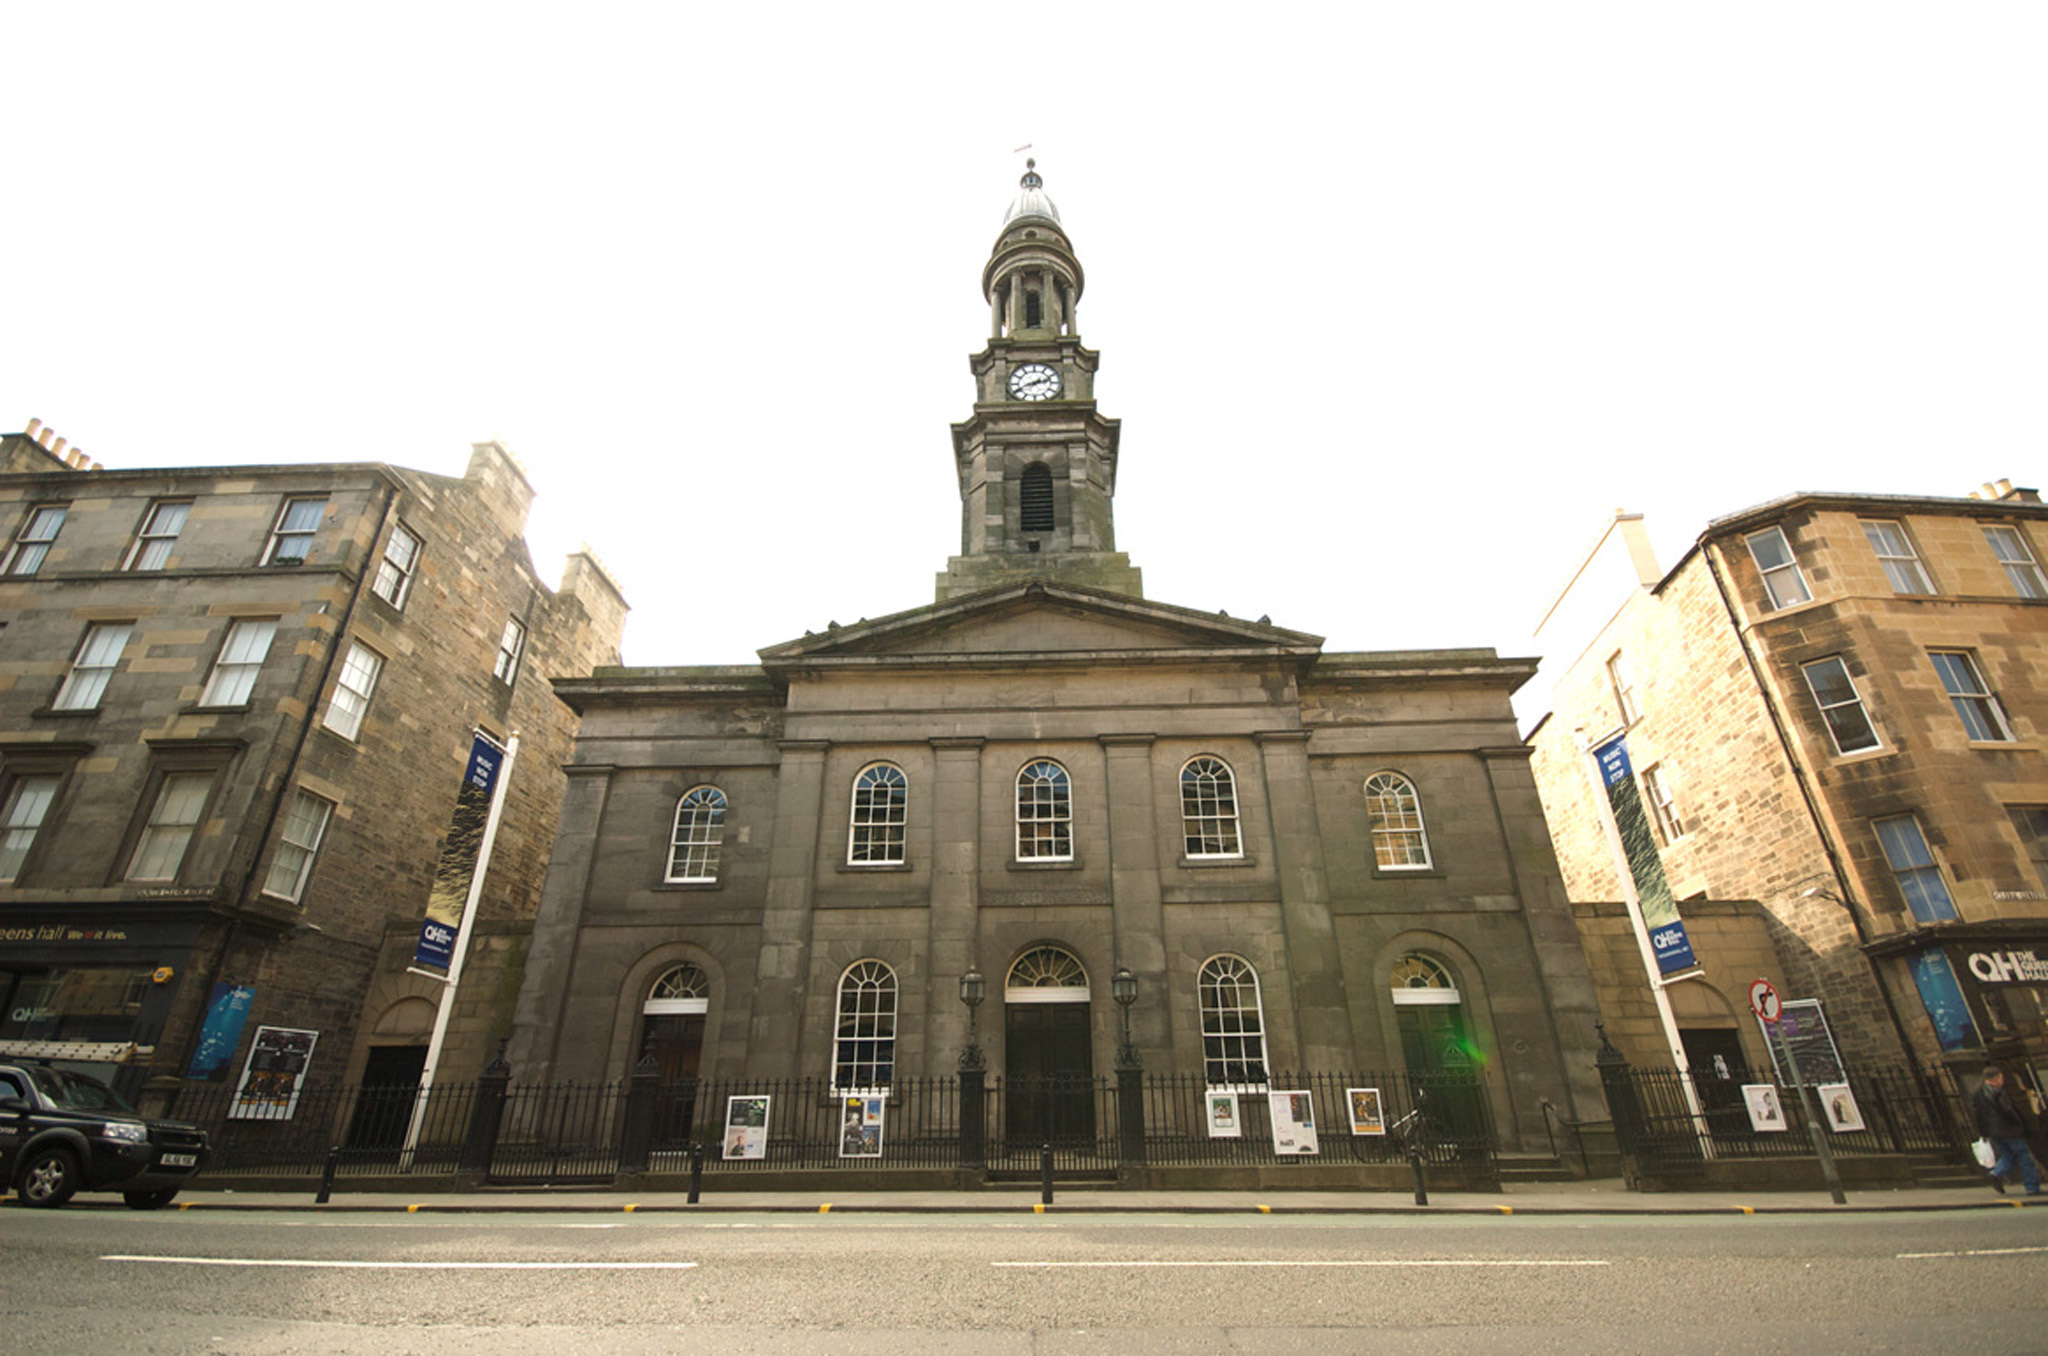 Experience a gig at the Queen's Hall